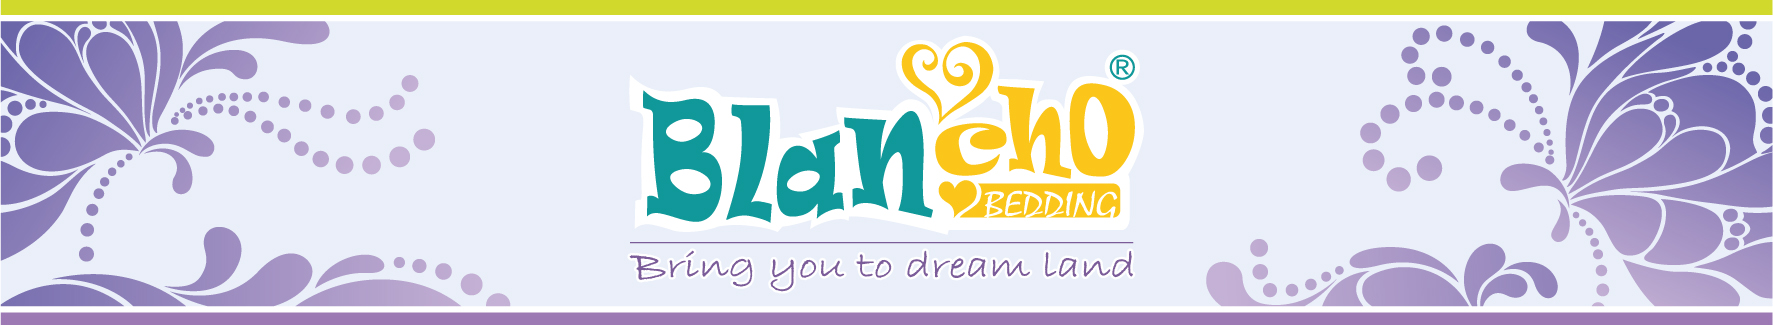 Welcome to Blancho Bedding affiliate program!!